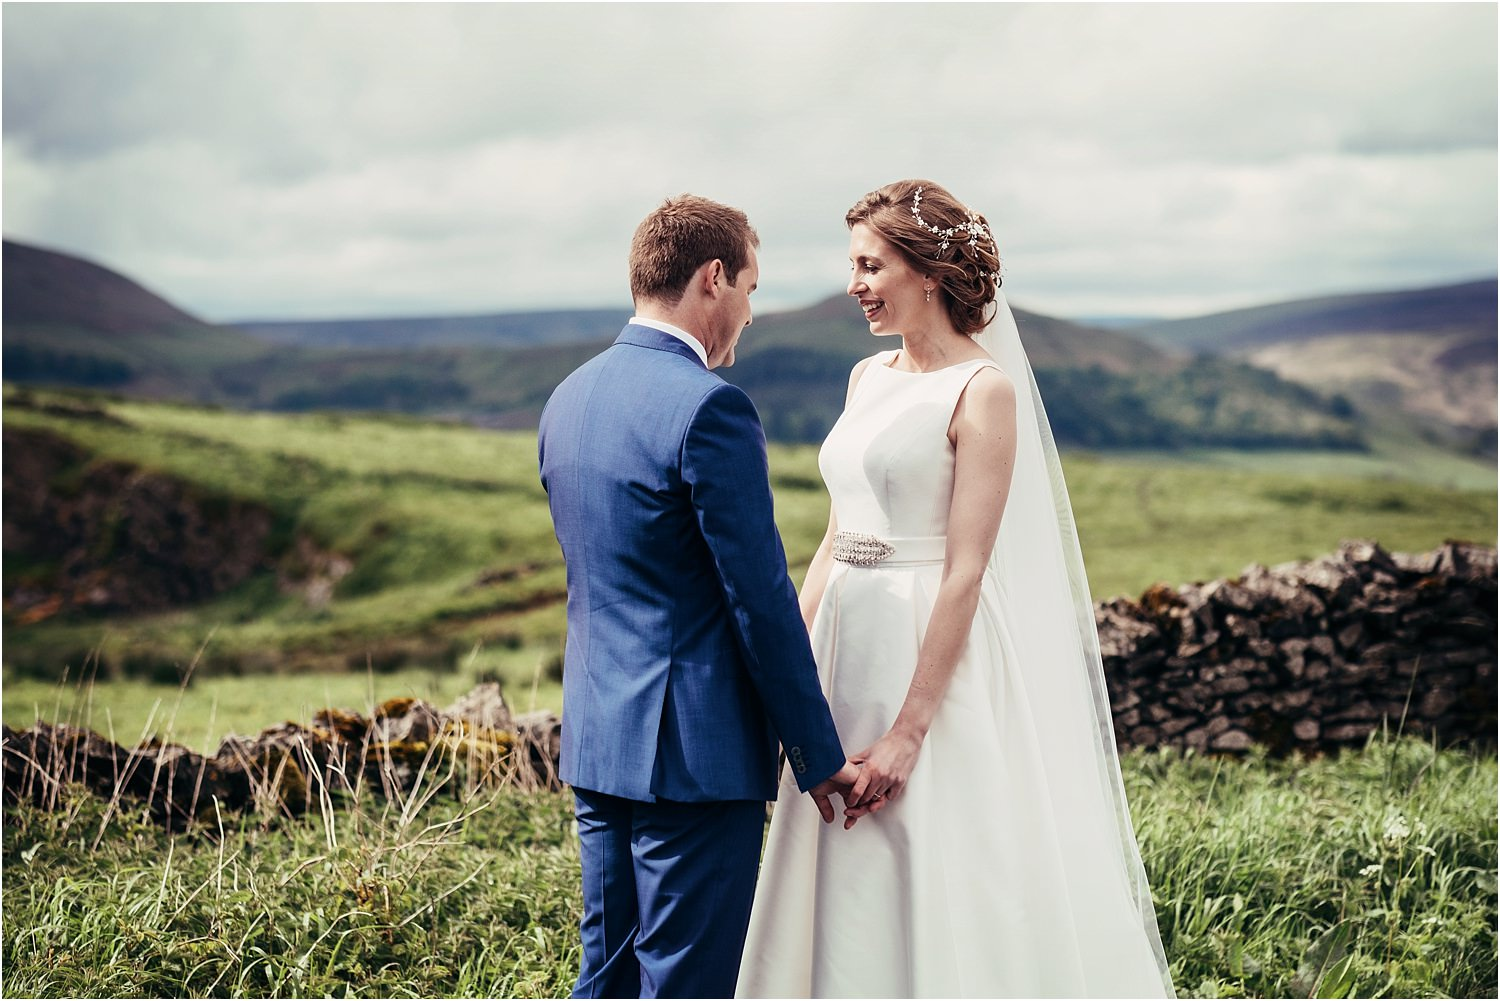 Bride in Jesus Peiro dress, shares a moment with her groom with the fells of the Trough of Bowland in the background